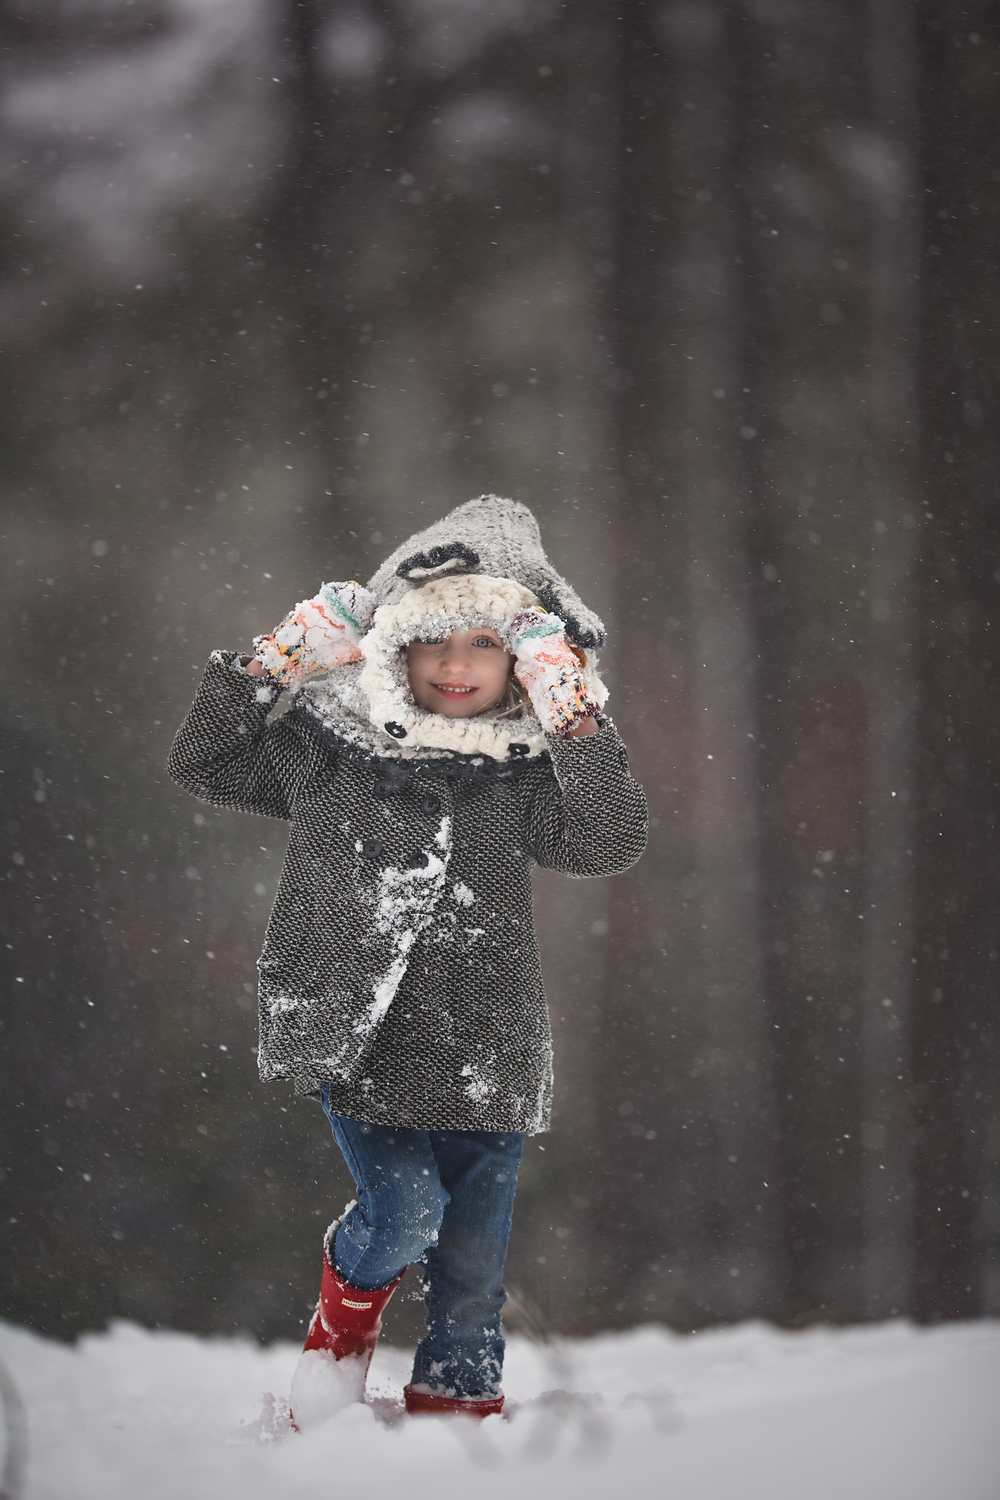 Hello-Olivia-photography-Long-Island-snow-blizzard-play-ice-cold